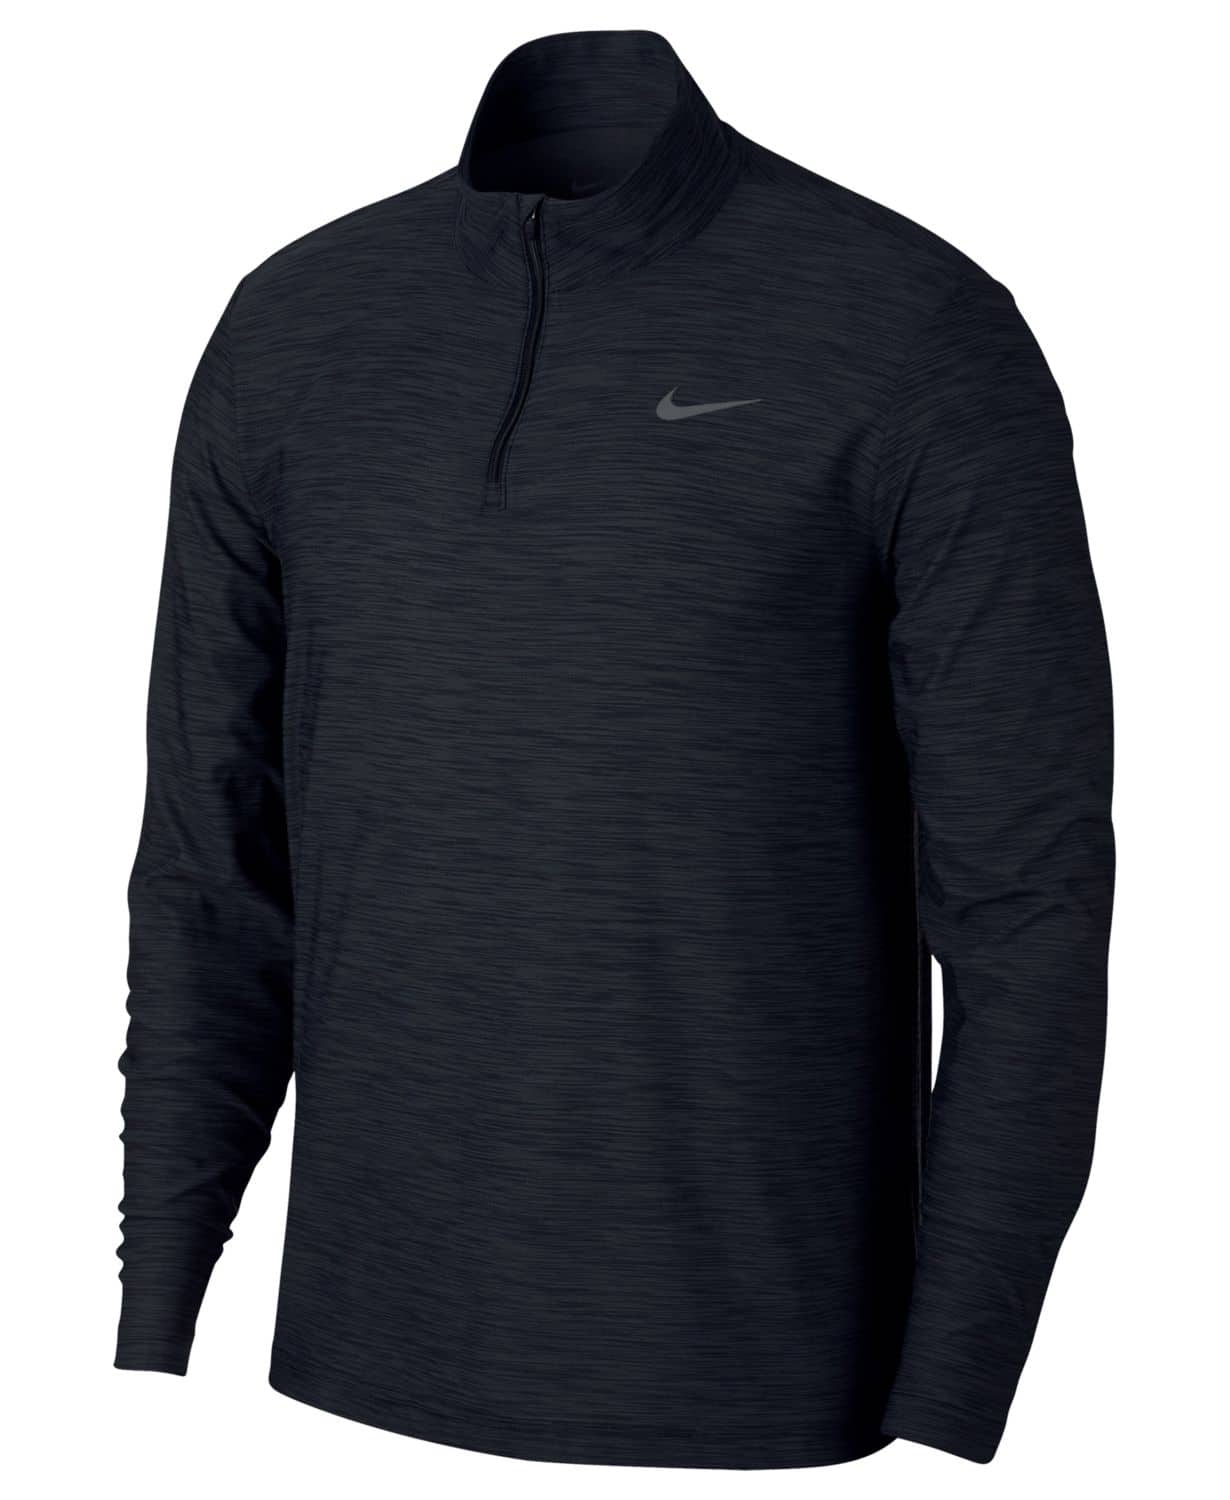 ee4833db4 Men's Nike Breathe Quarter-Zip Activewear Training Top - Slickdeals.net